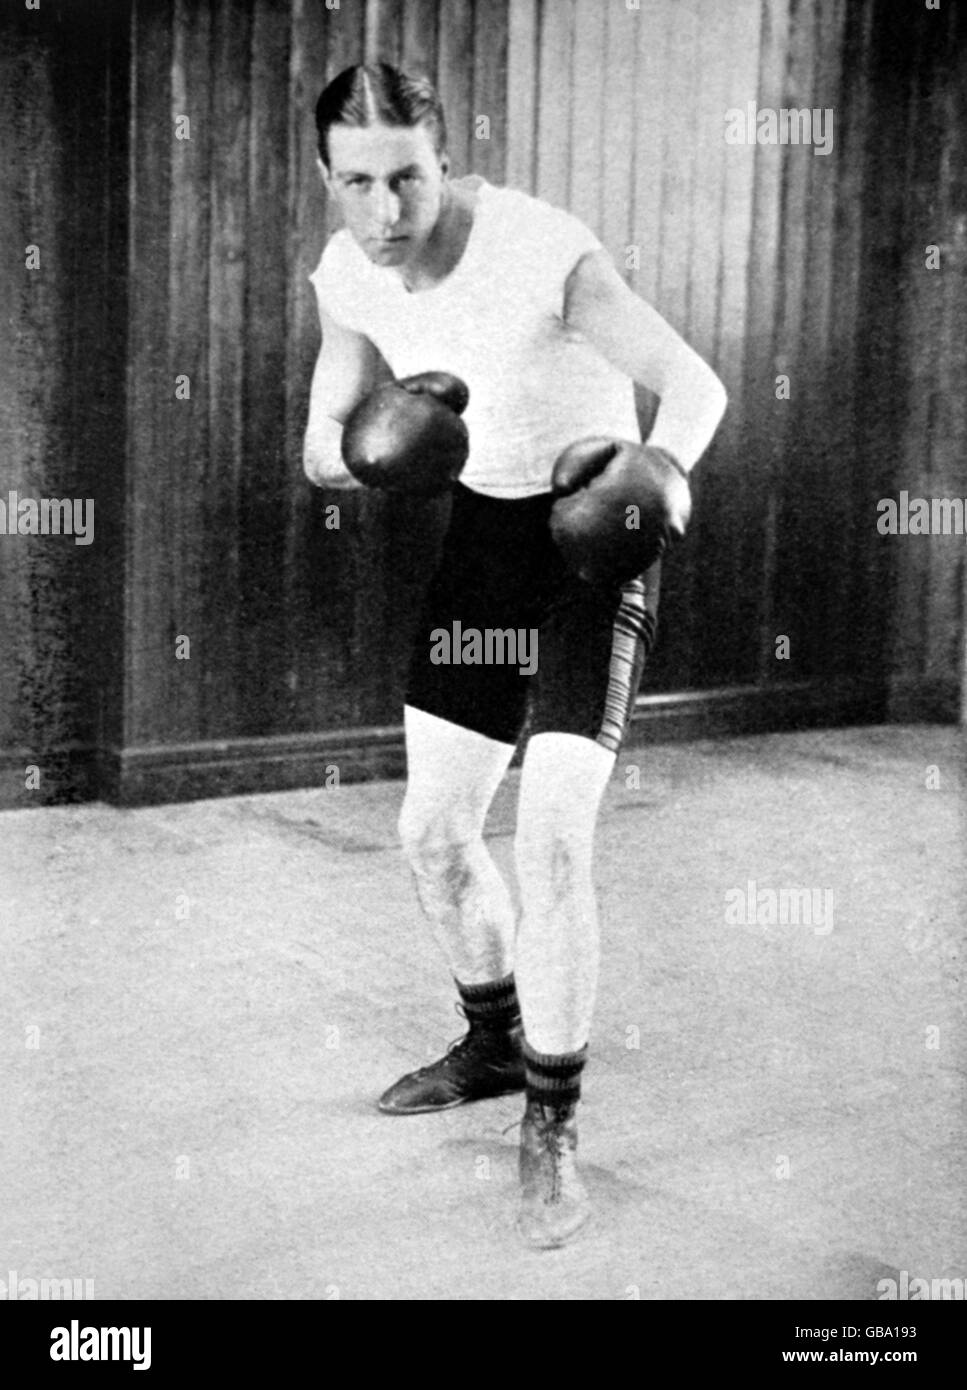 Boxing - London Olympic Games 1908 - Middleweight Division - Stock Image